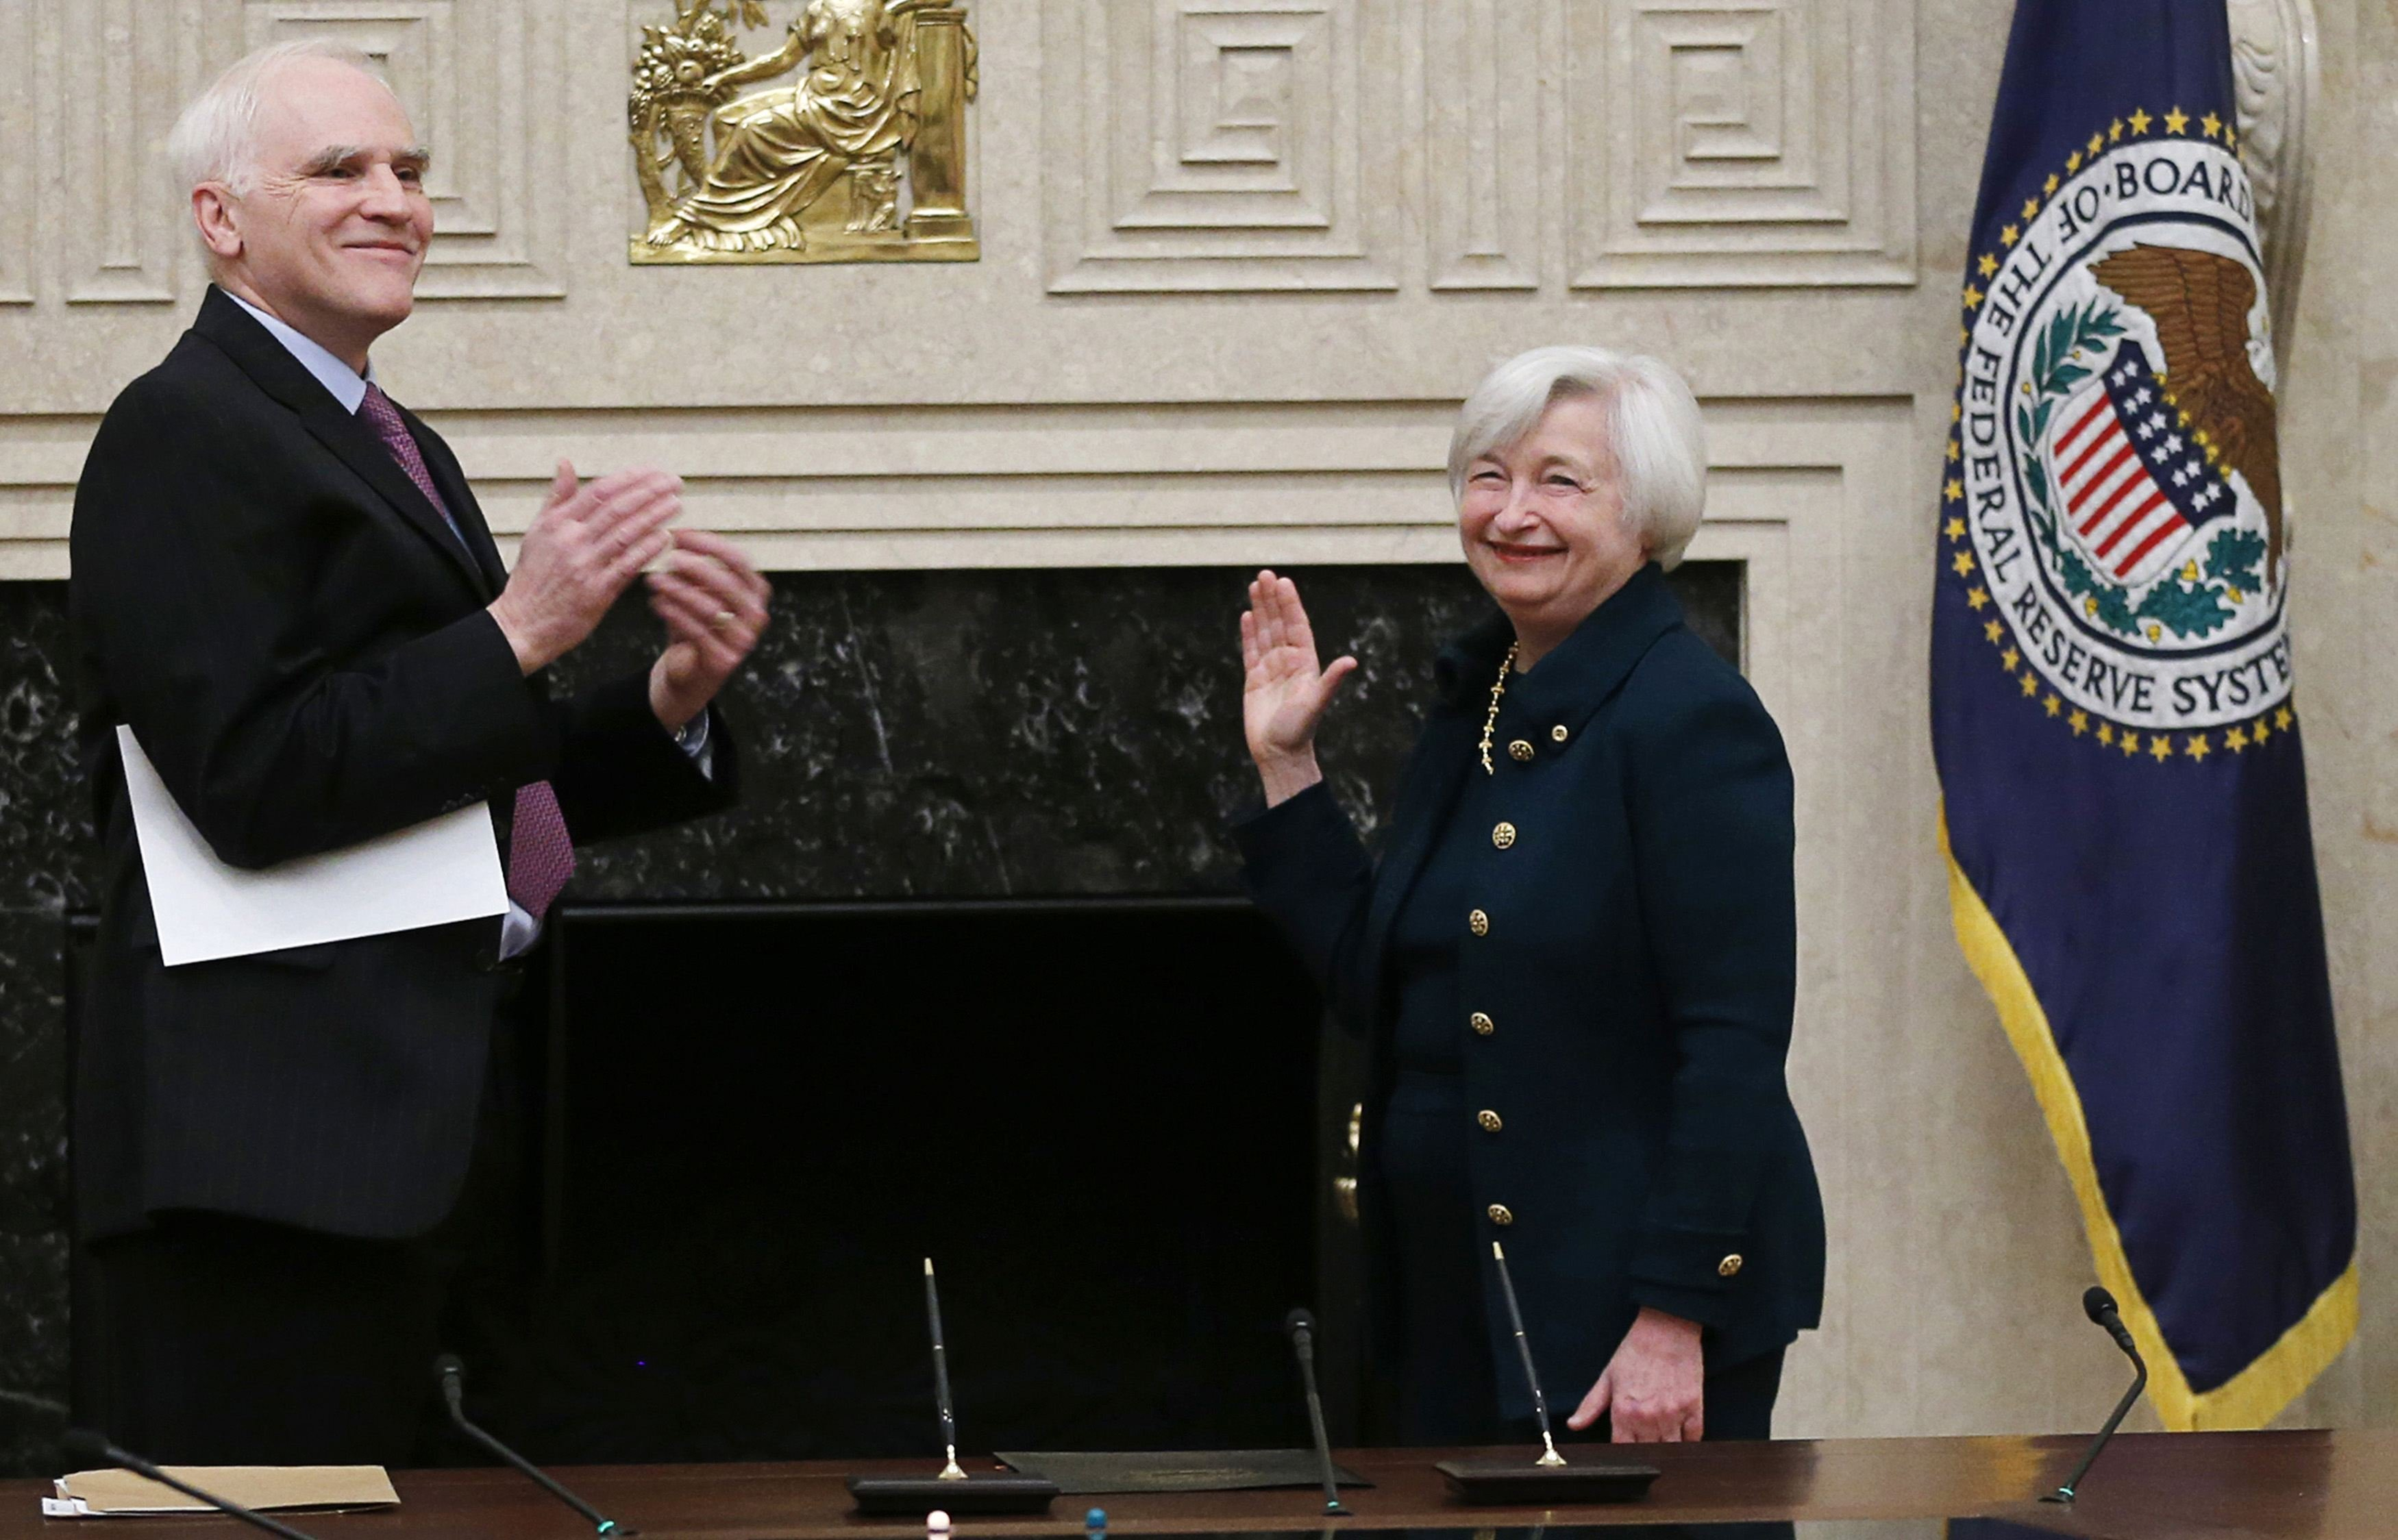 Federal Reserve Board Governor Daniel Tarullo (L) applauds new Federal Reserve Board Chairwoman Janet Yellen after administering the oath of office to Yellen at the Federal Reserve Board in Washington February 3, 2014.